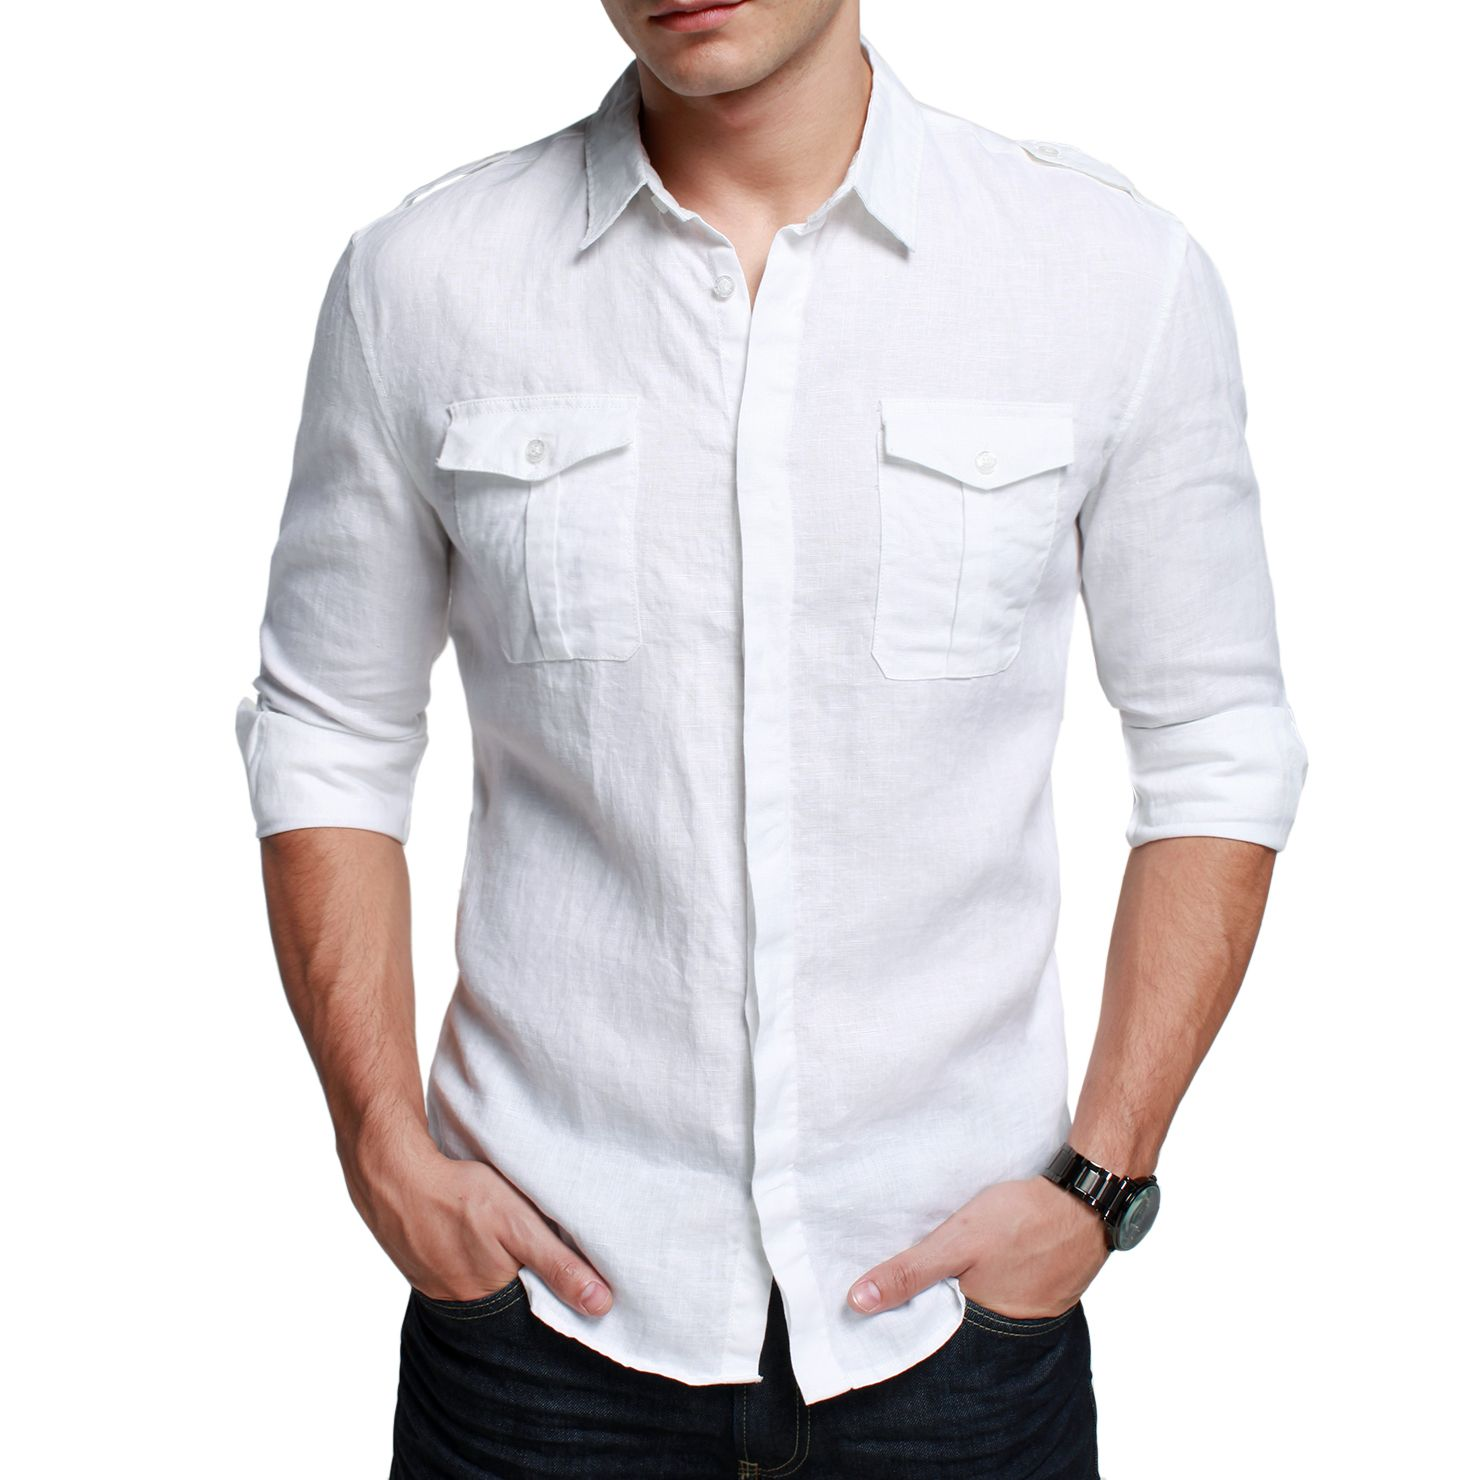 white casual summer shirt | for love | Pinterest | Shirts for men ...